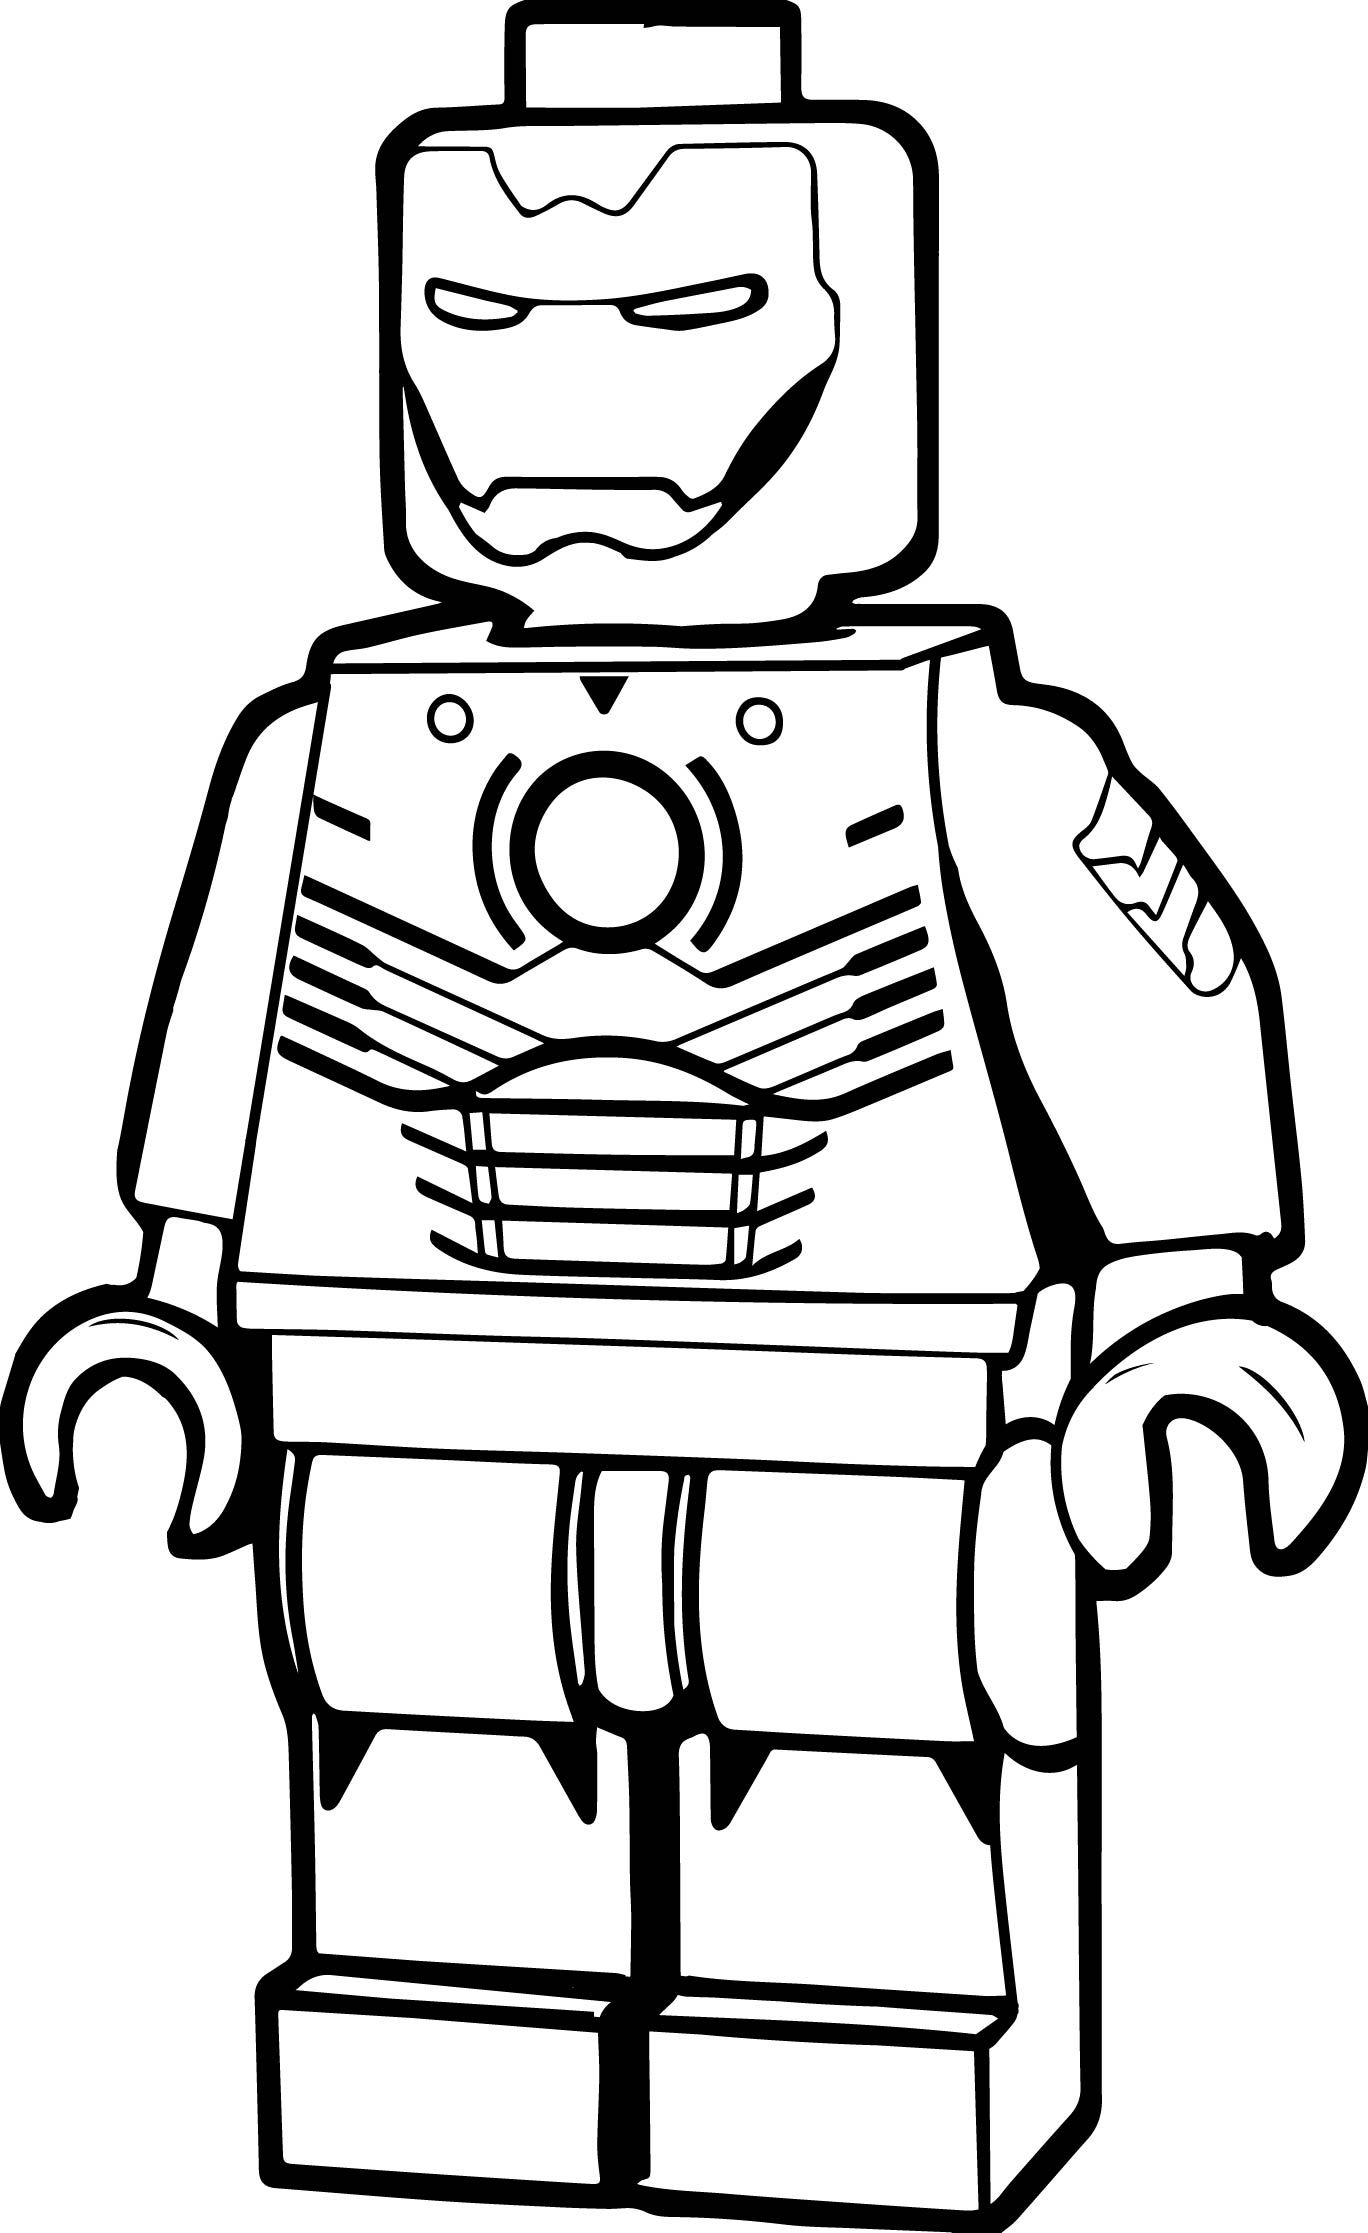 Cool Lego Iron Man Coloring Page In 2020 Lego Coloring Lego Coloring Pages Lego Iron Man